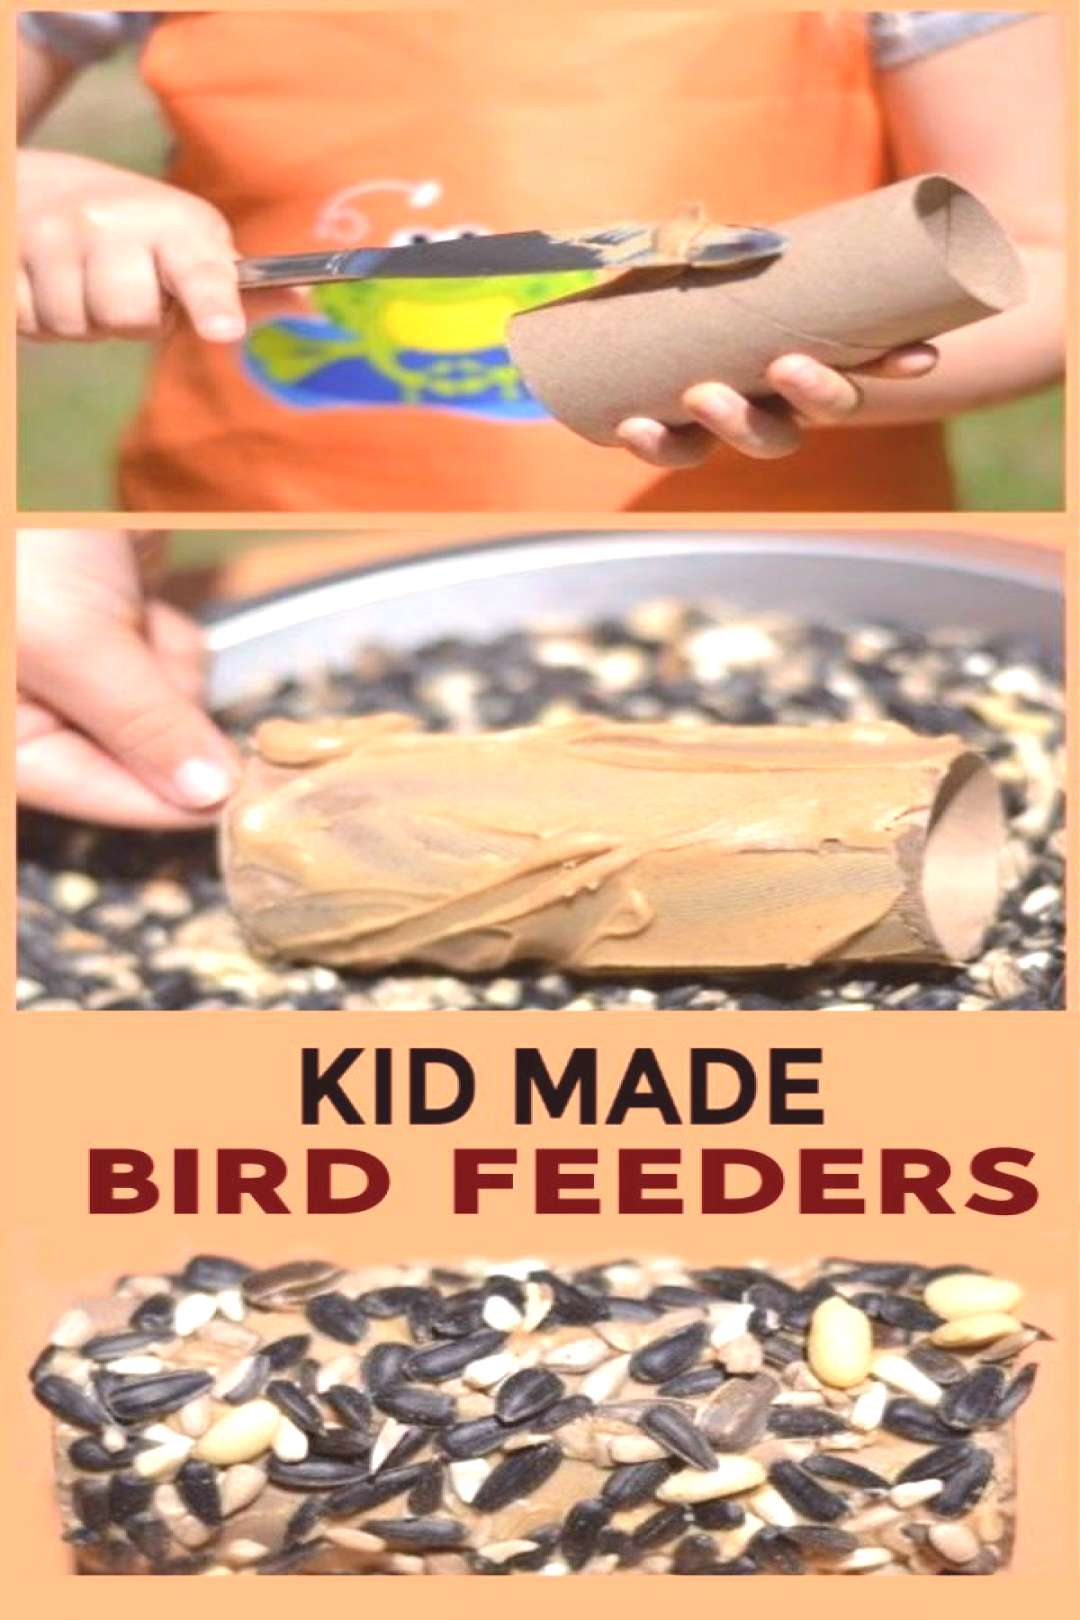 Make bird feeders using cardboard tubes and peanut butter! These kid made bird feeders are the perf